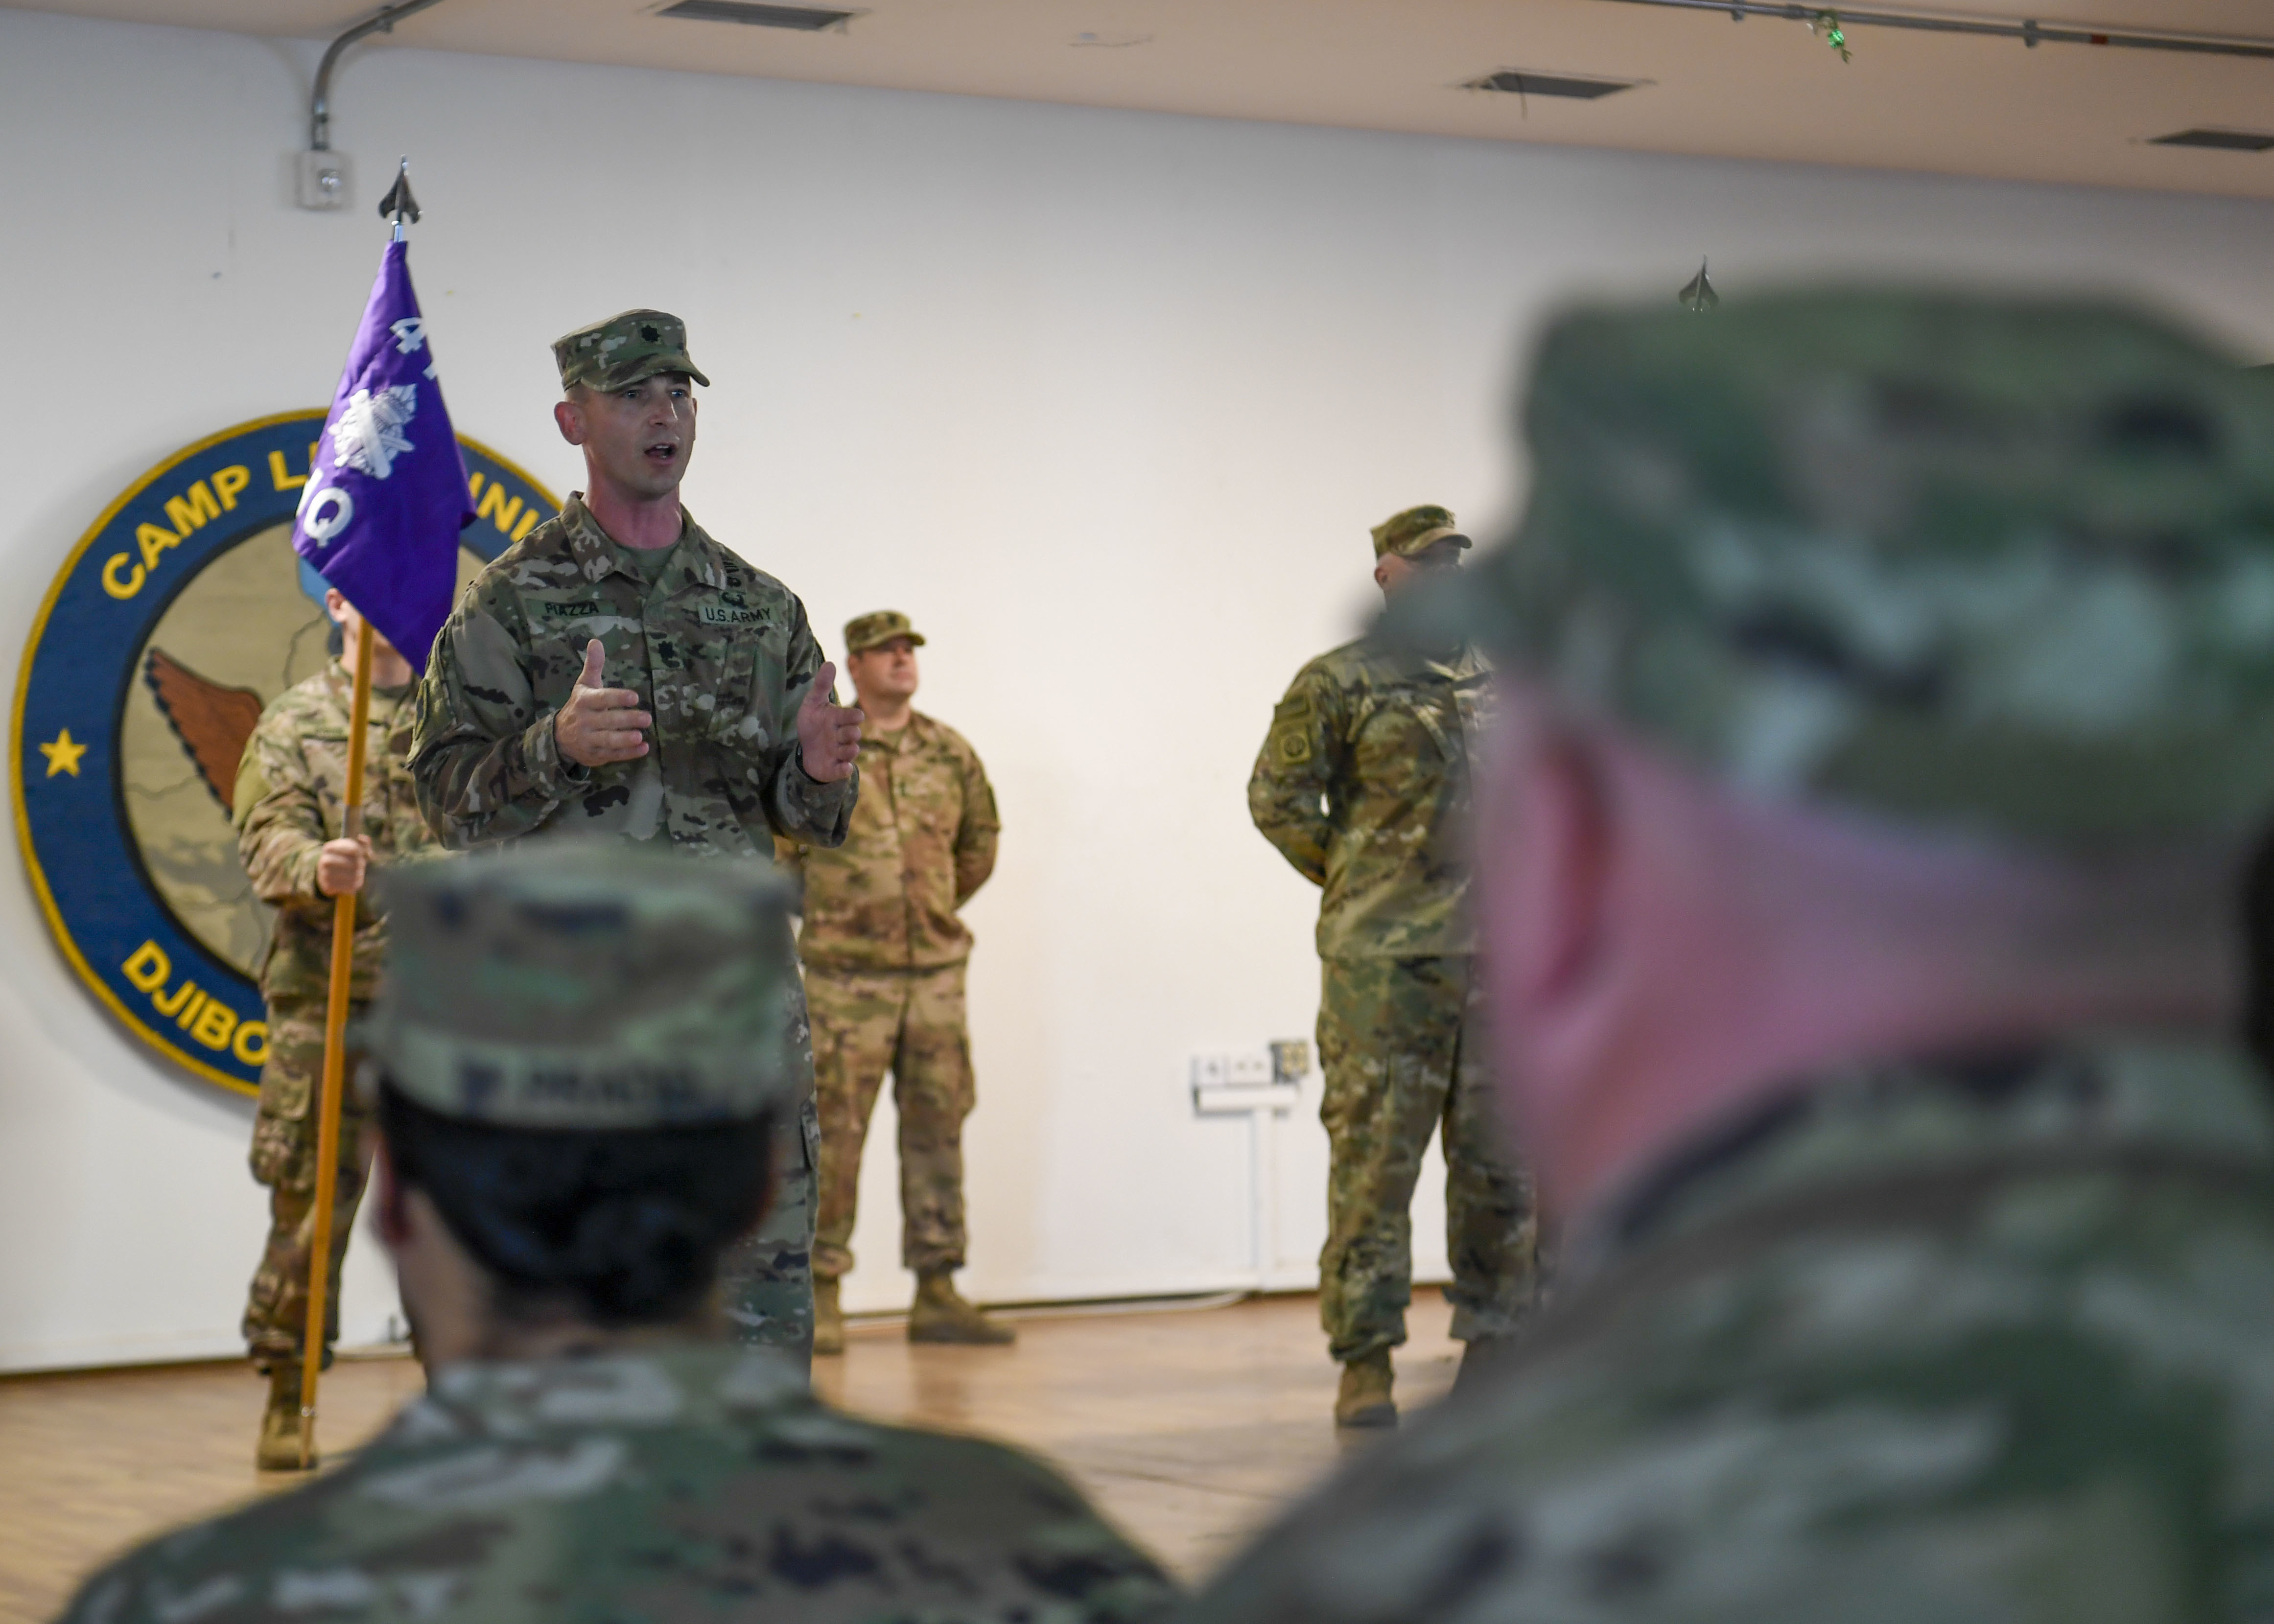 U.S. Army Lt. Col. Cecil Piazza, 411th Civil Affairs Battalion commander, assigned to Combined Joint Task Force-Horn of Africa (CJTF-HOA), speaks to his Soldiers during a transfer of authority ceremony at Camp Lemonnier, Djibouti, July 9, 2019. The 411th CA Battalion assumed civil affairs responsibilities for CJTF-HOA from the 403rd CA Battalion. Civil Affairs Soldiers are the governance and foreign-culture experts of the Army. (U.S. Air Force photo by Staff Sgt. J.D. Strong II)